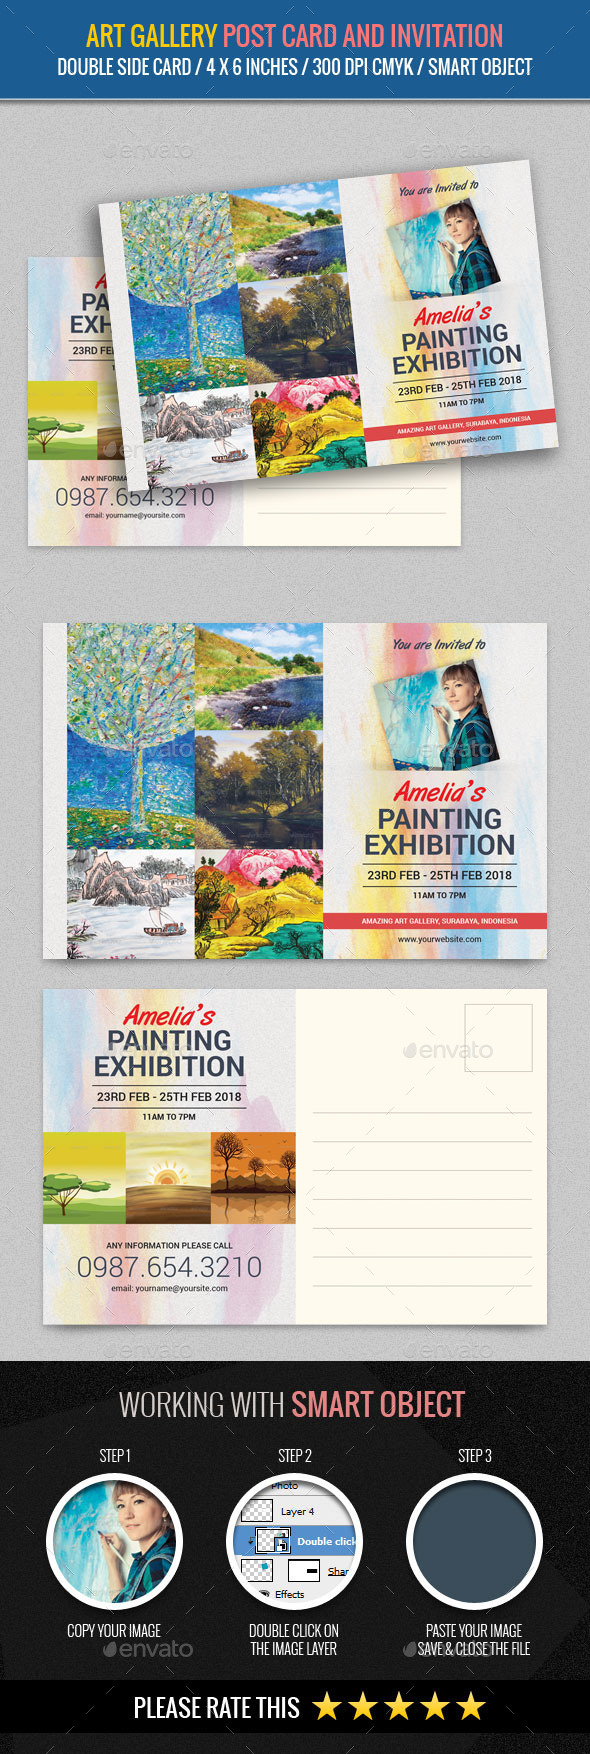 Art Gallery and Painting Exhibition Post Card Temp - Cards & Invites Print Templates